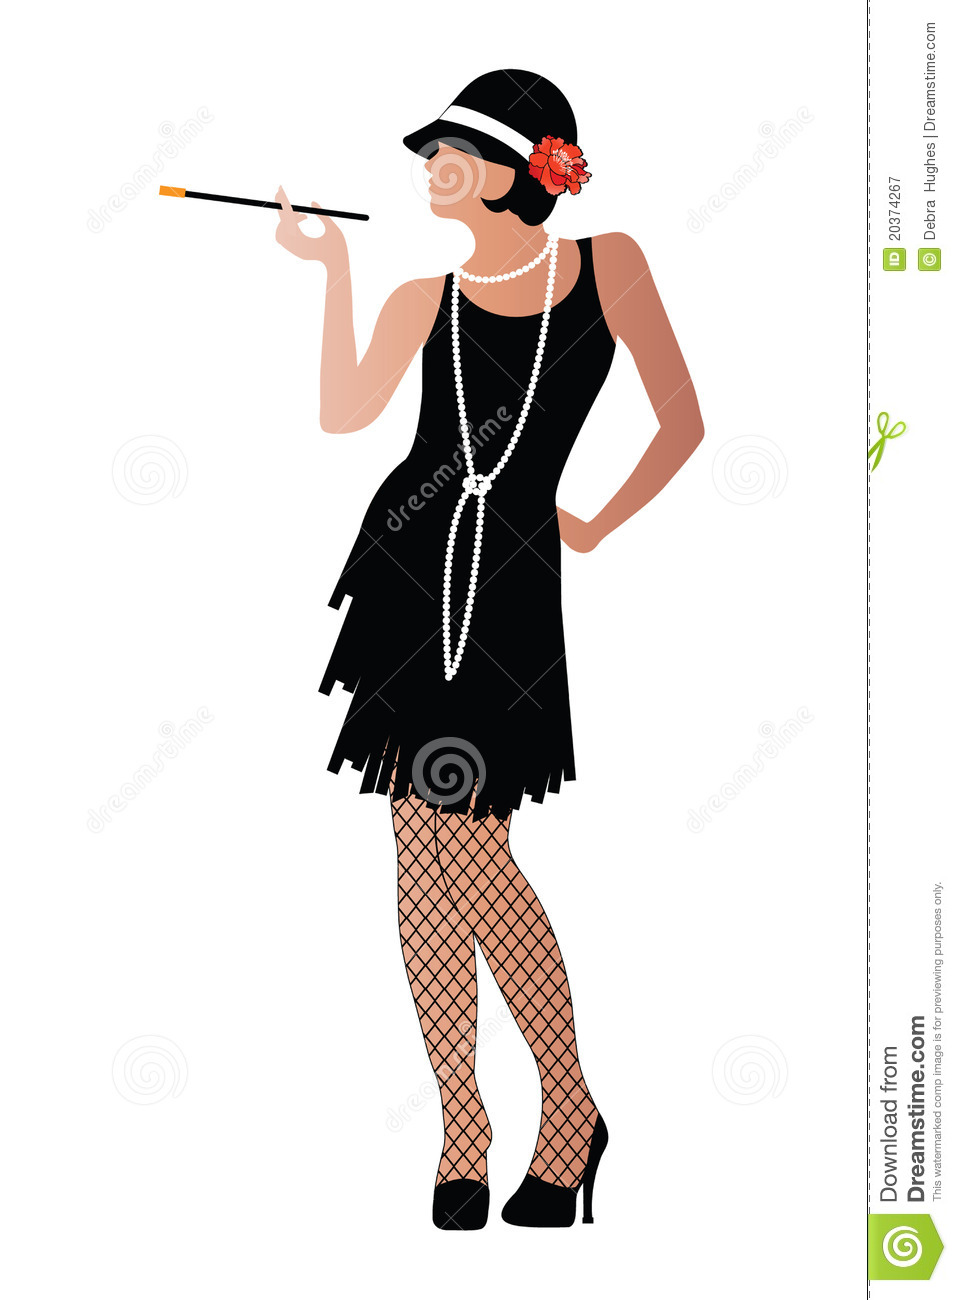 Flapper With Cigaratte And Fishnet Stockings Royalty Free Stock